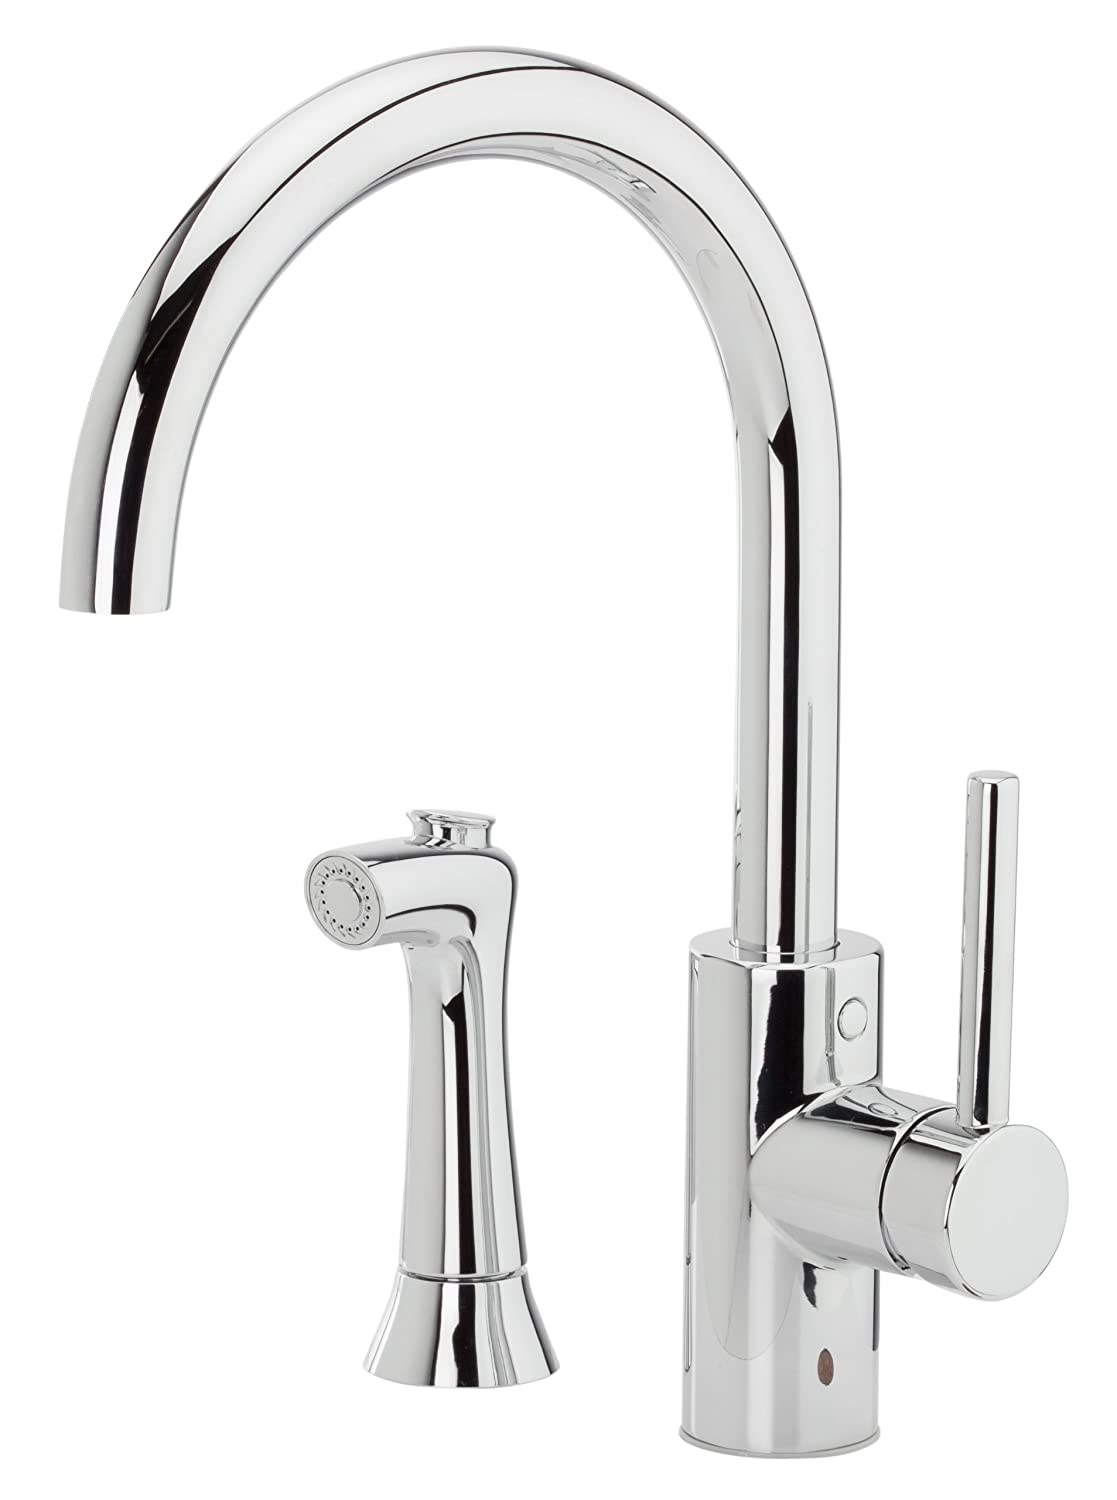 Pfister Solo 1-Handle Kitchen Faucet with Side Spray, Polished Chrome